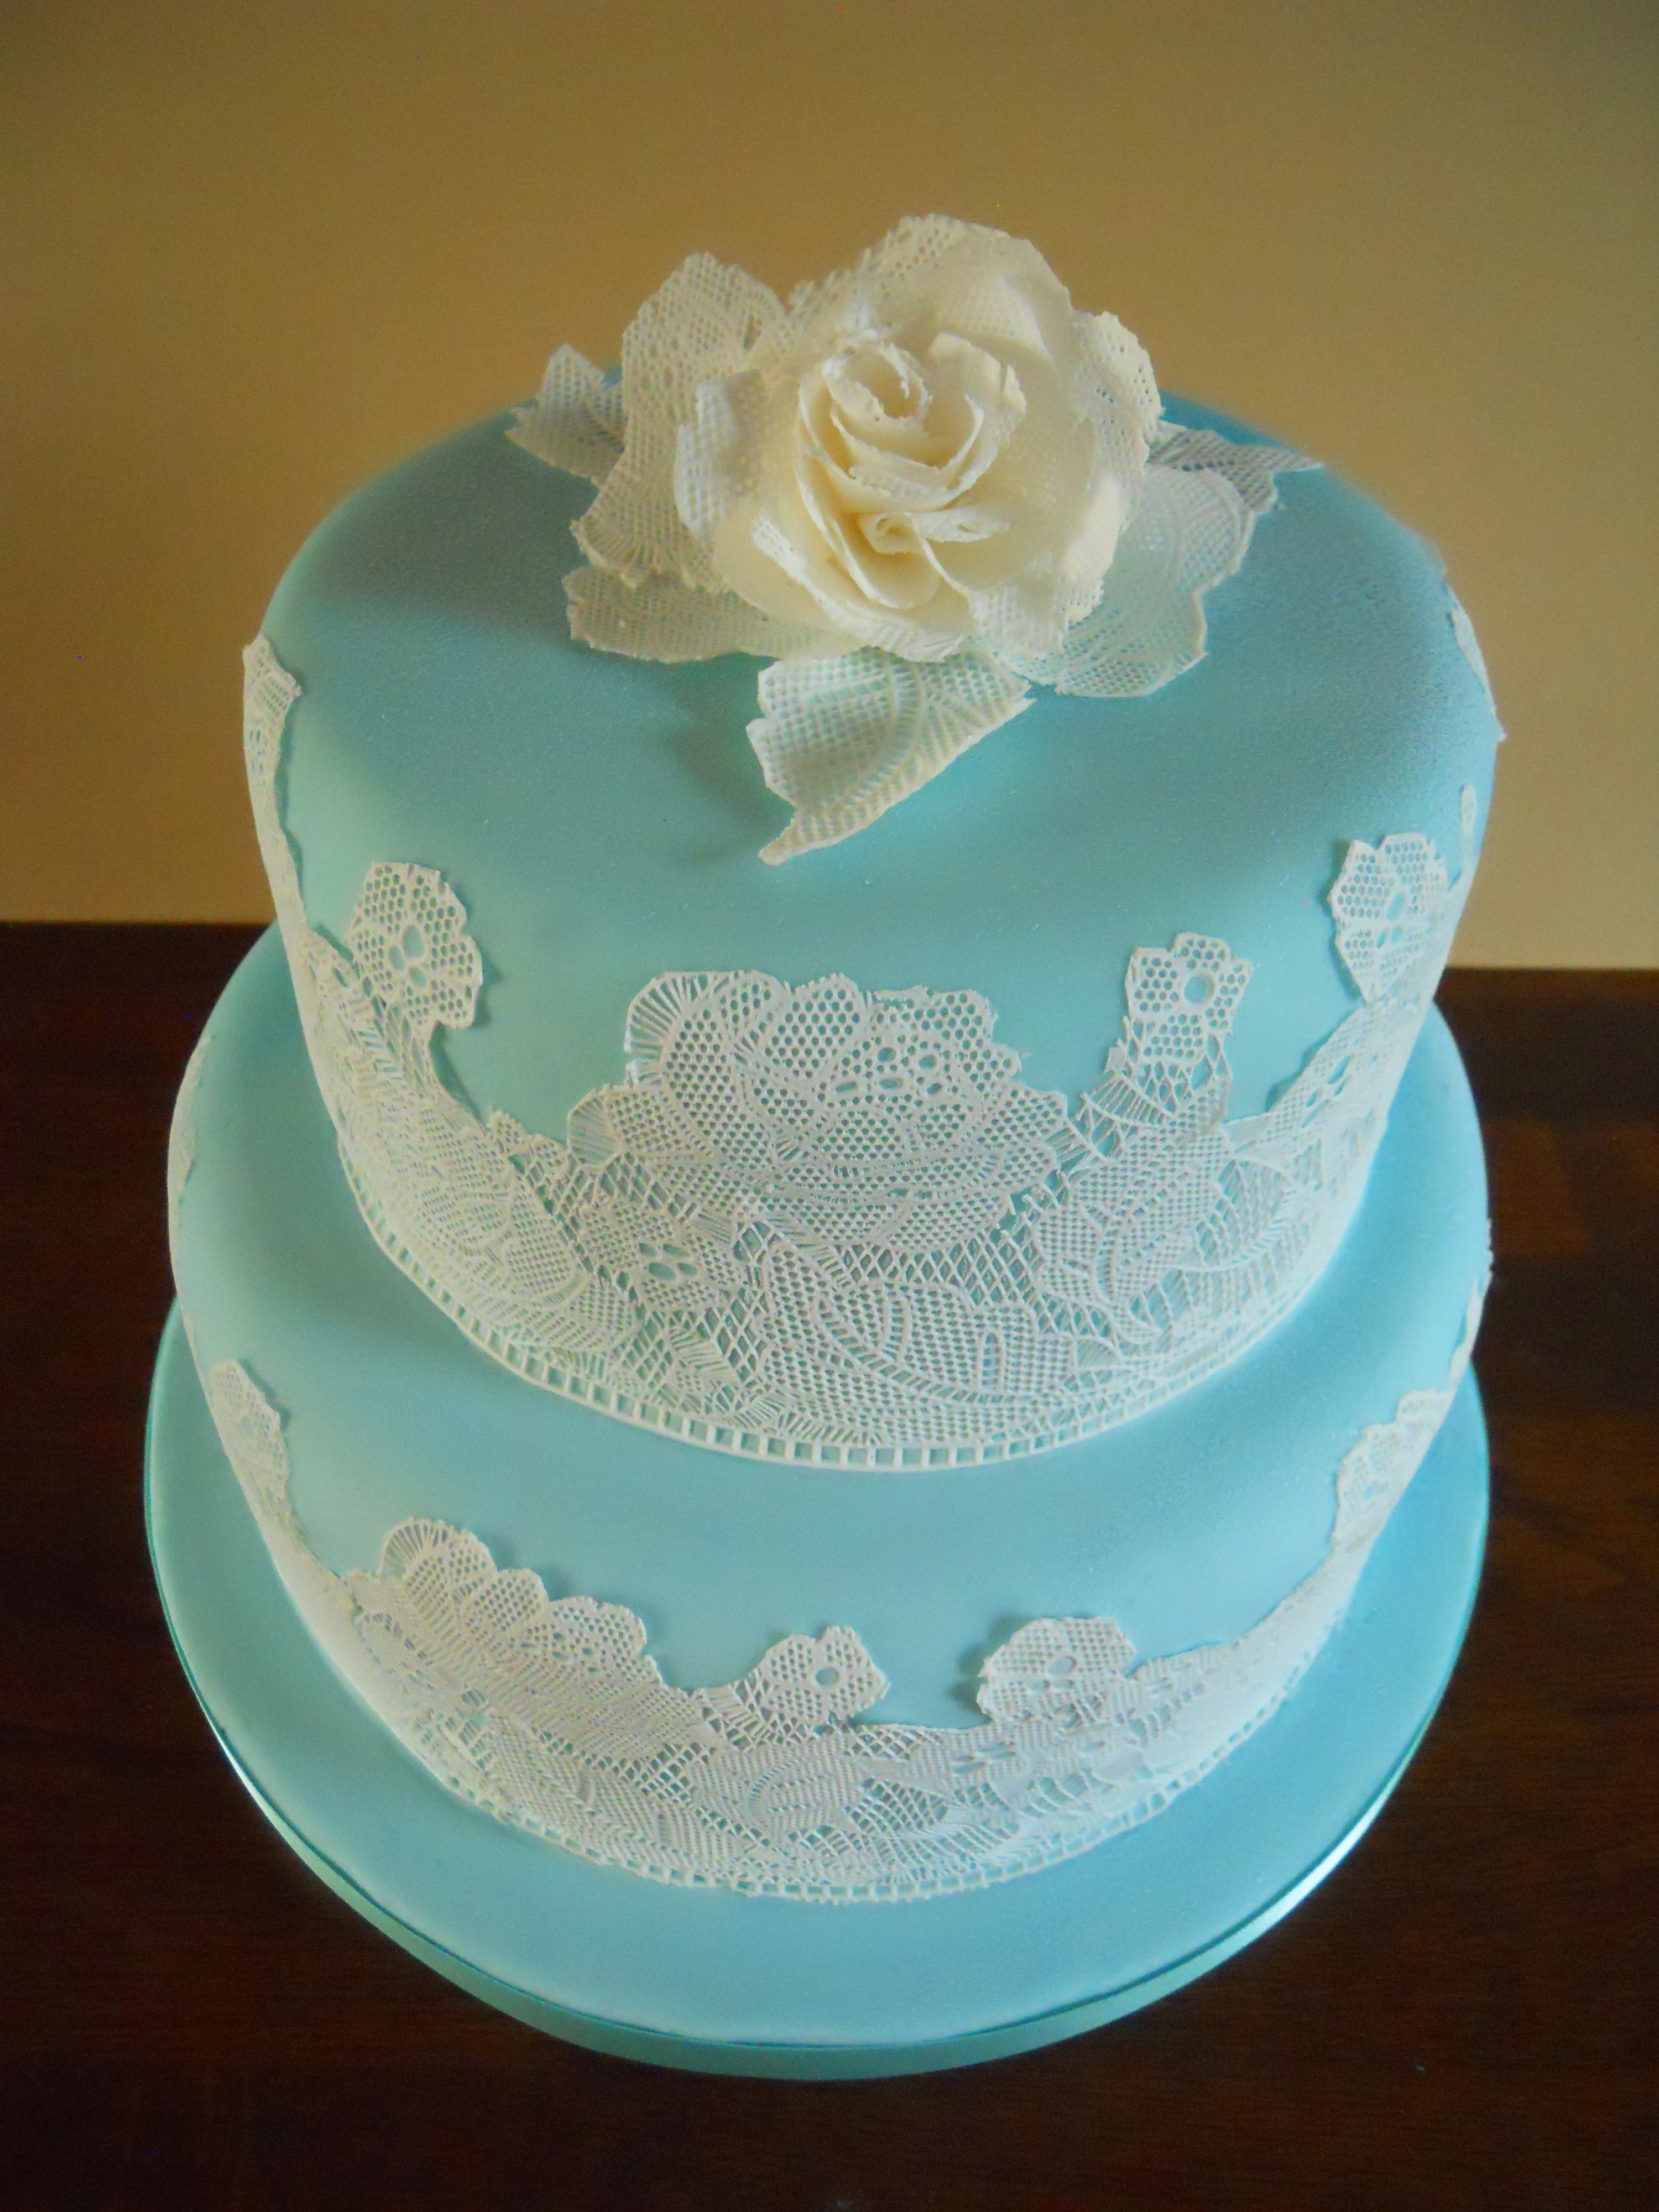 Edible Lace For Wedding Cakes  Edible Lace Rose Cake